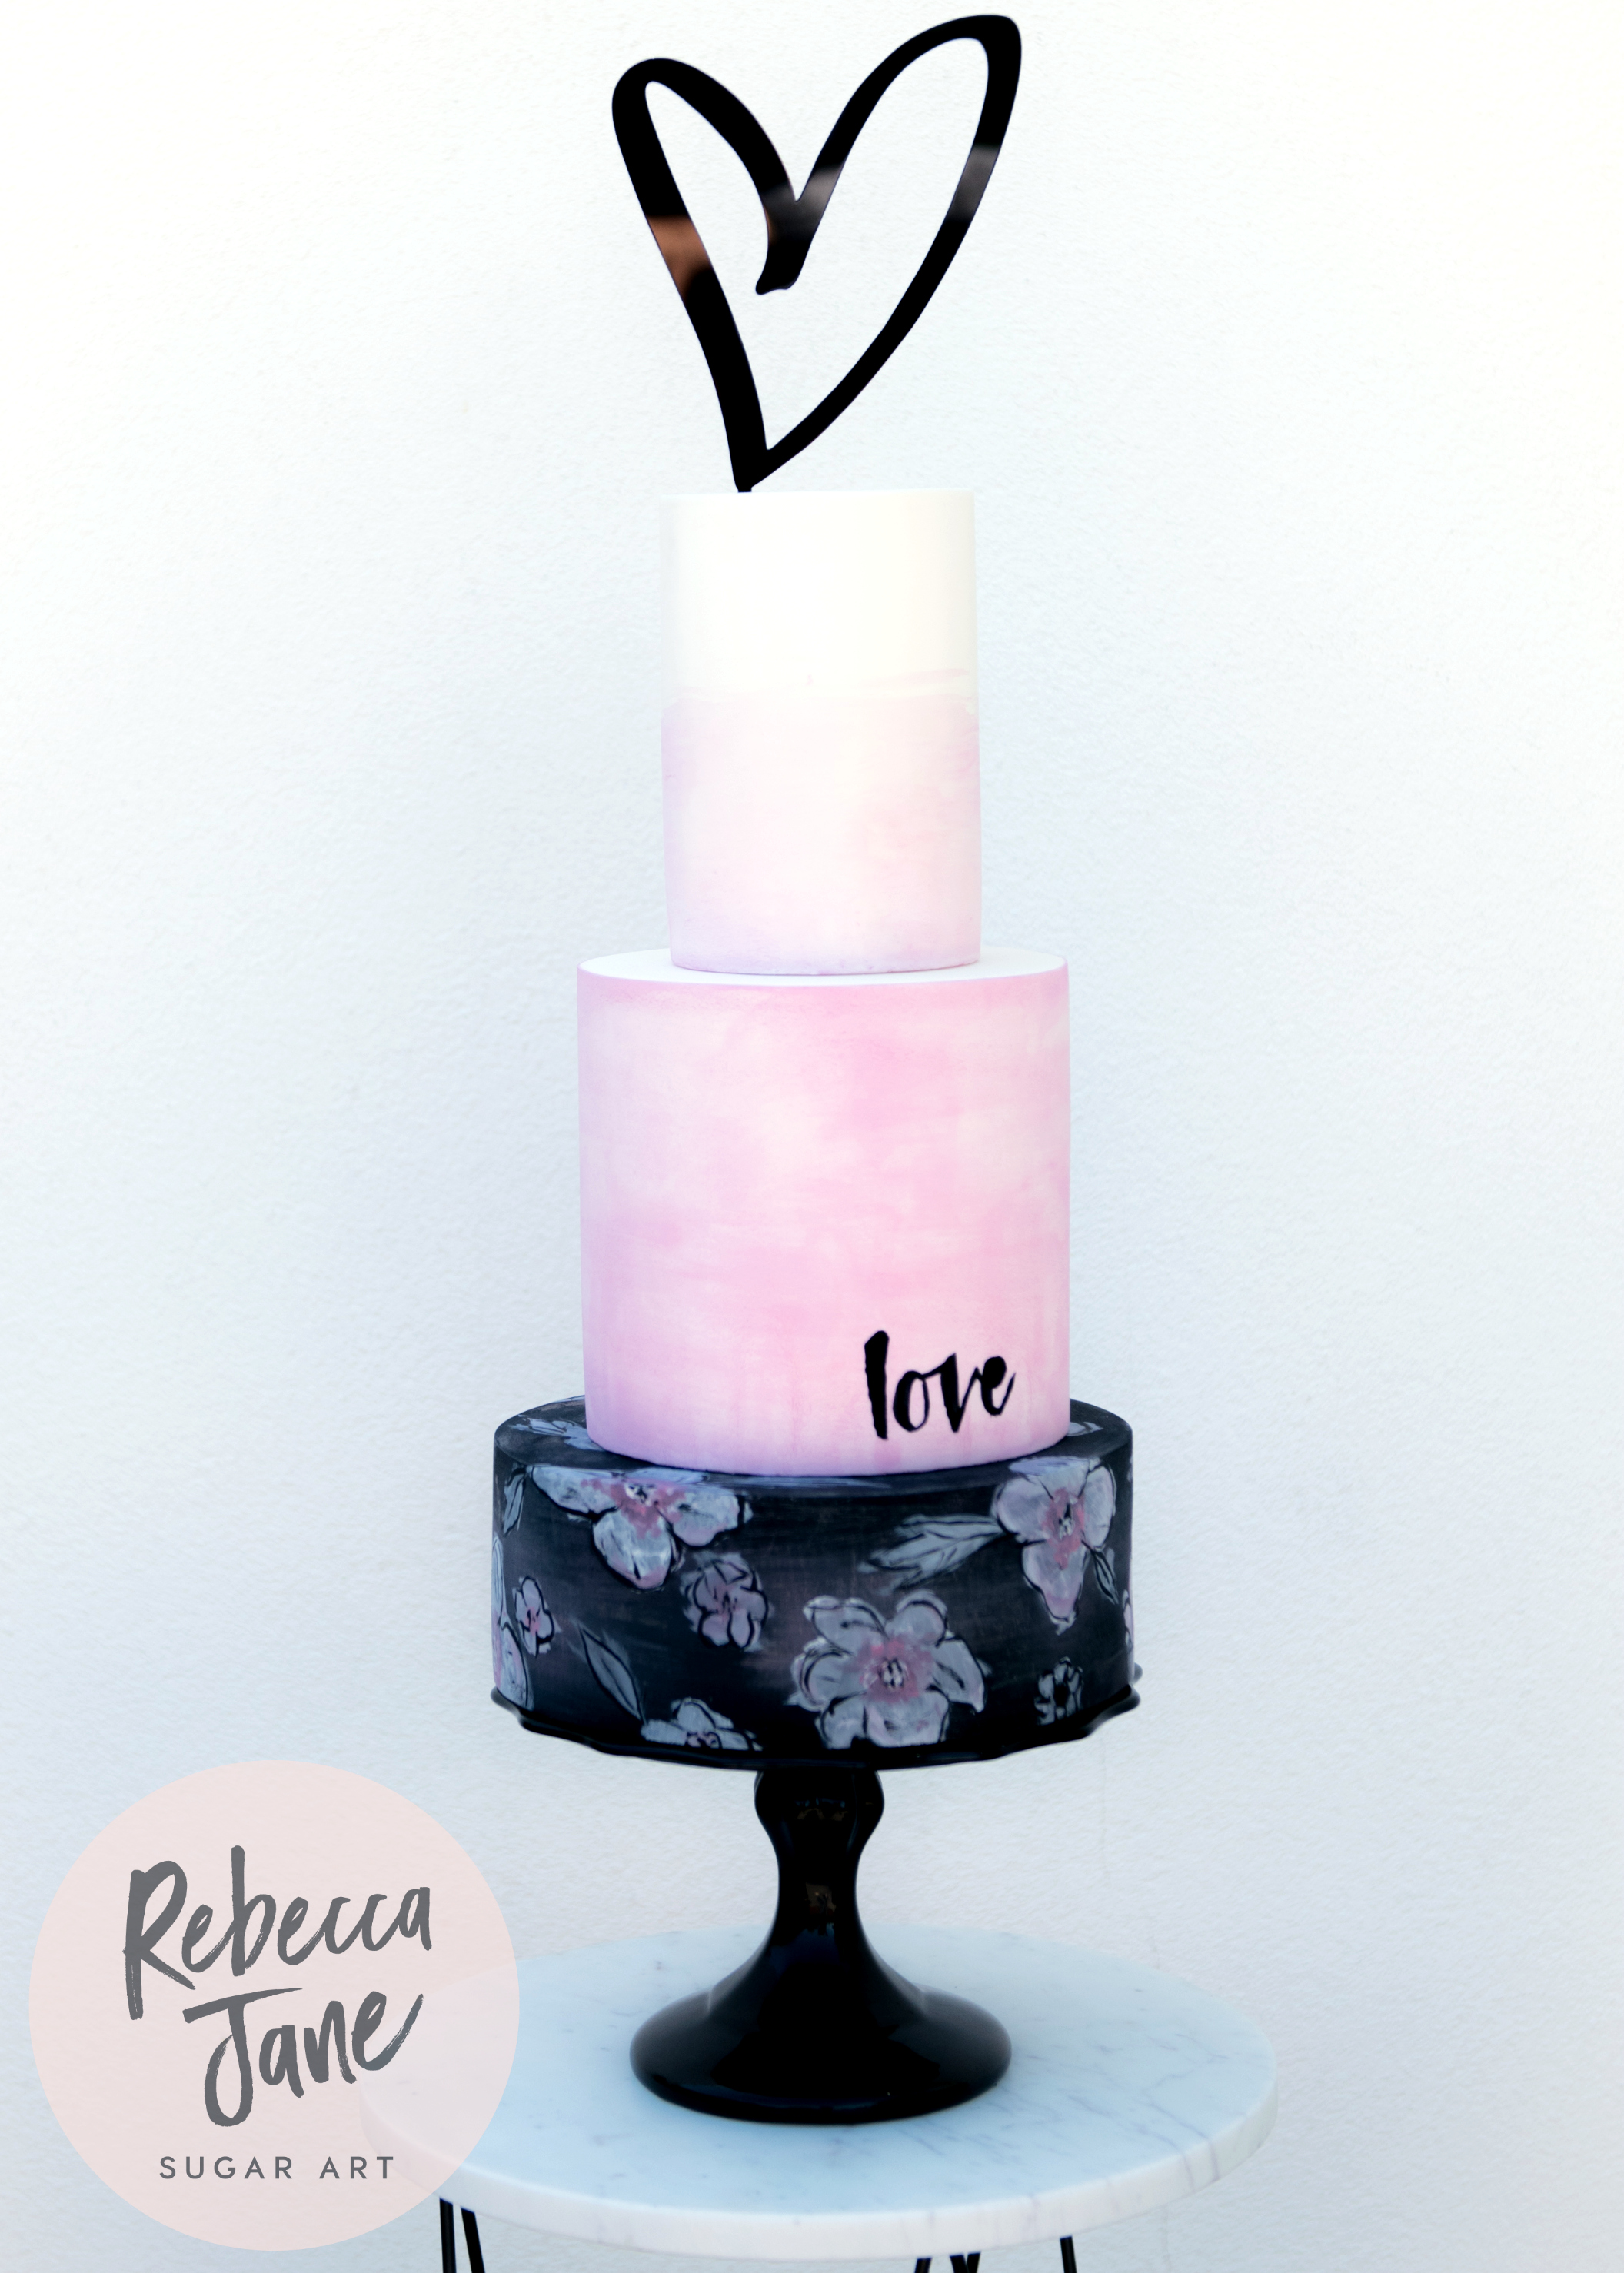 Rebecca Jane Sugar Art - modern bold black pink painted wedding cake